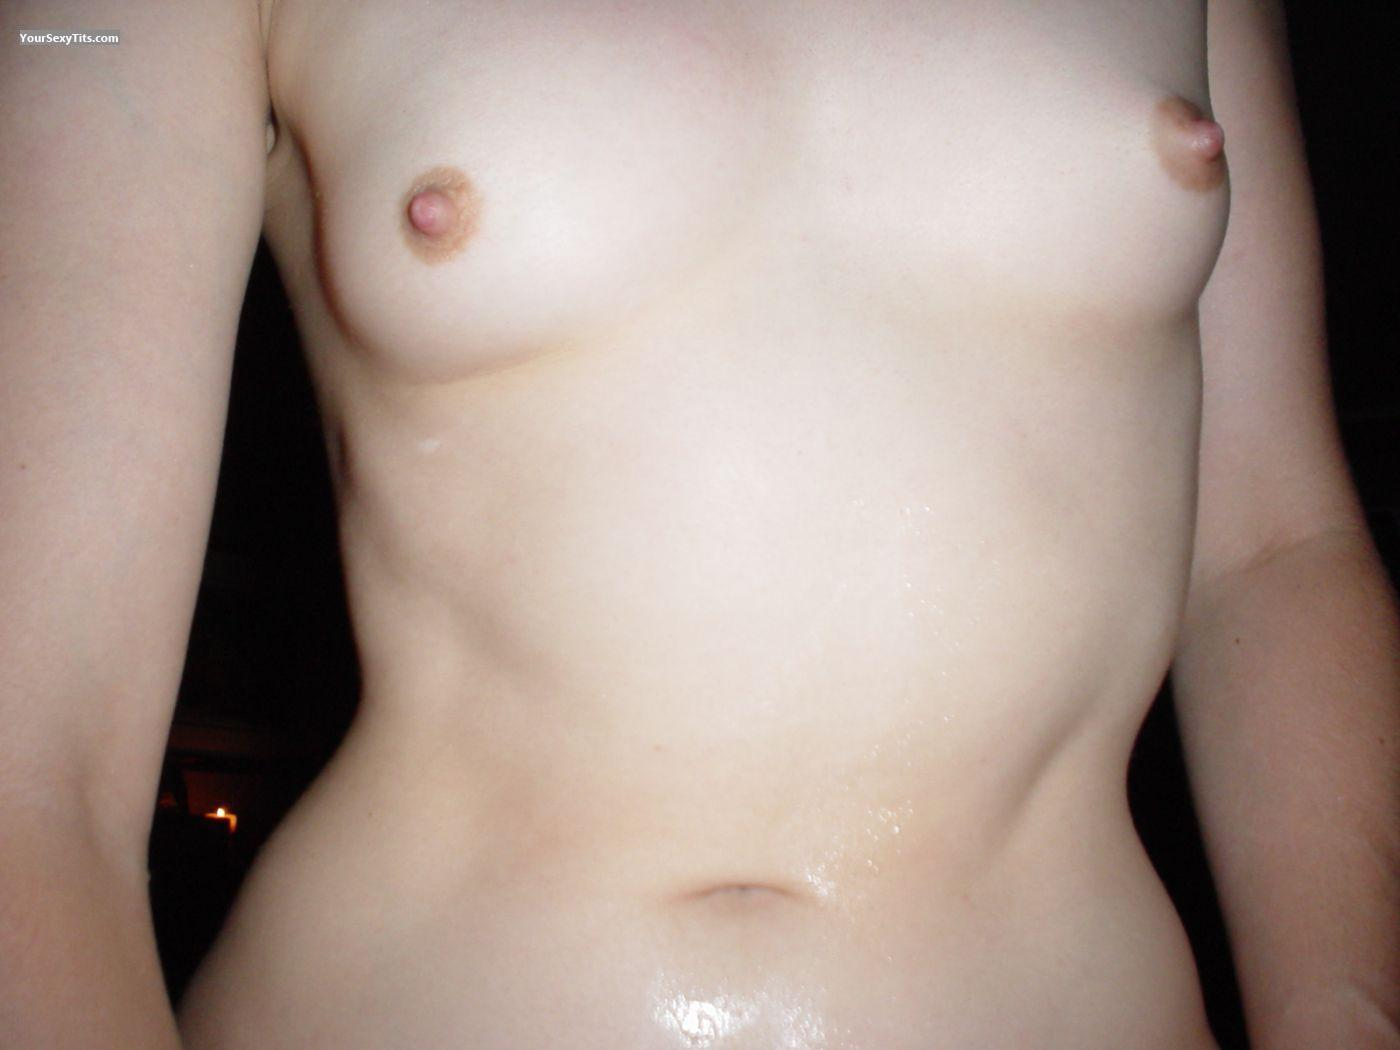 Very small Tits Tiny Titties